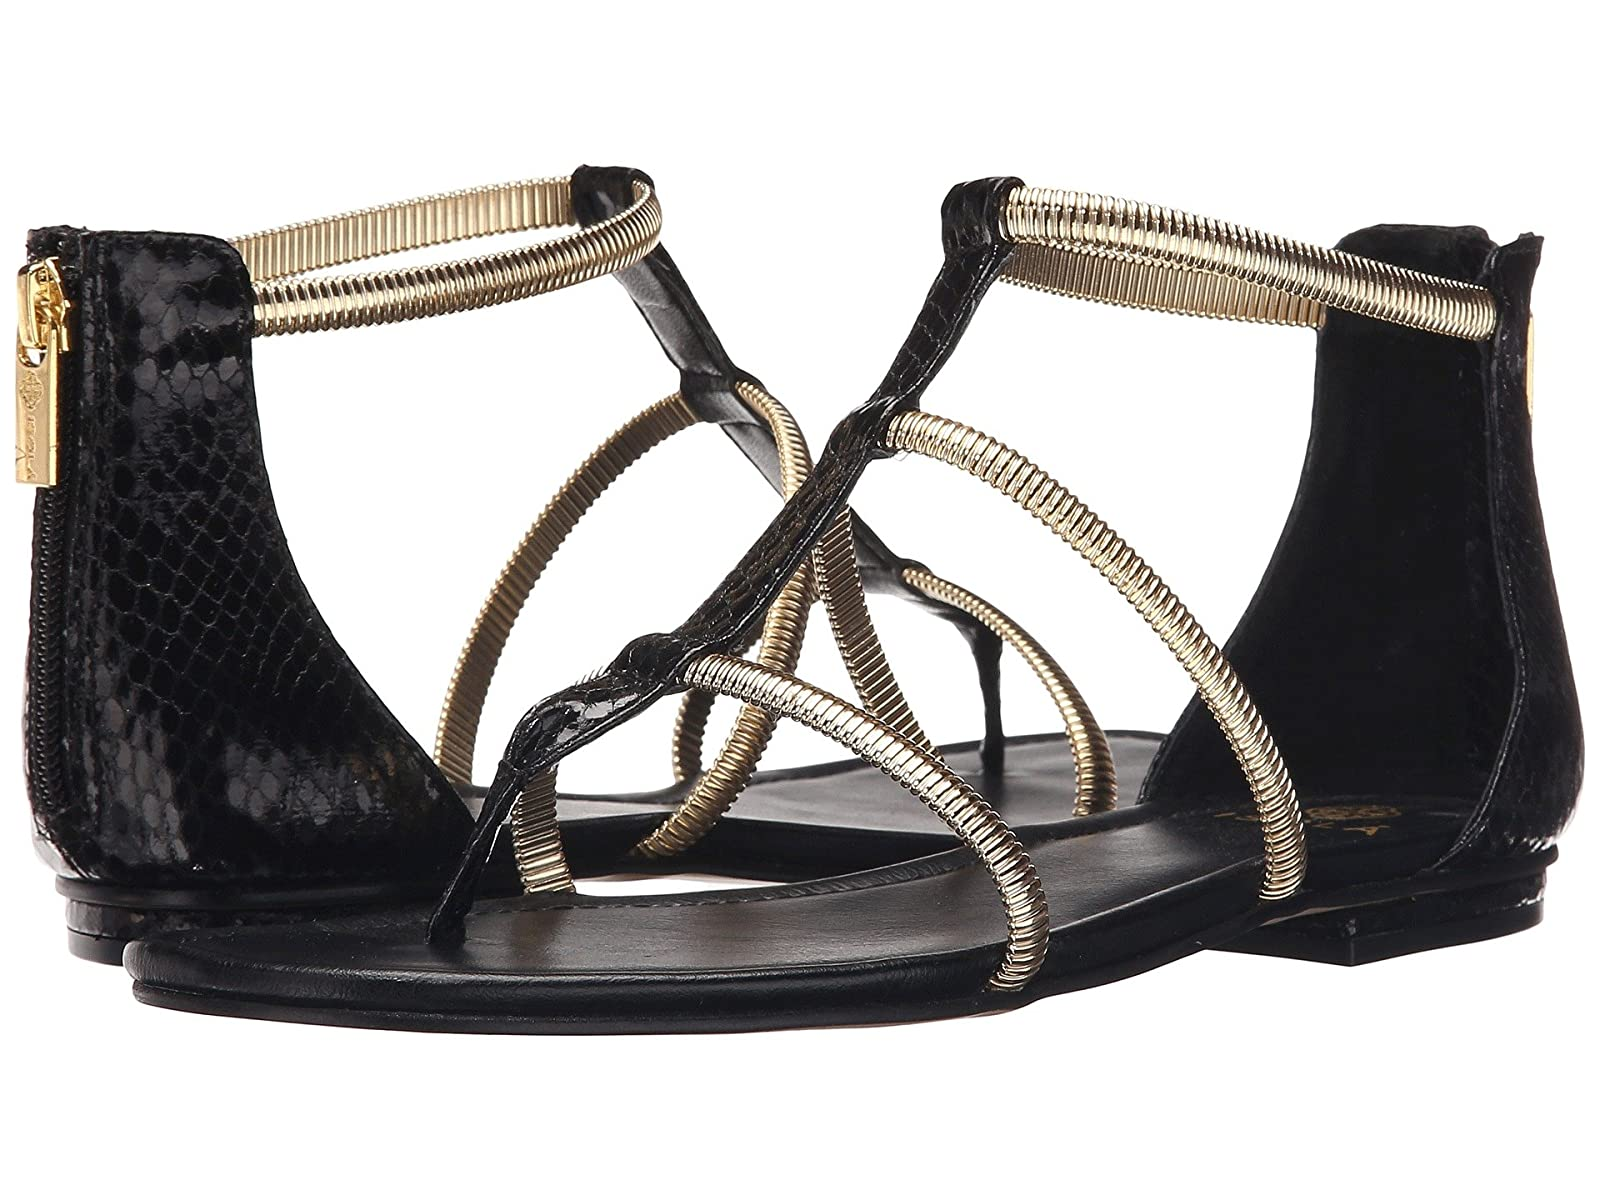 Isola MarkitaCheap and distinctive eye-catching shoes